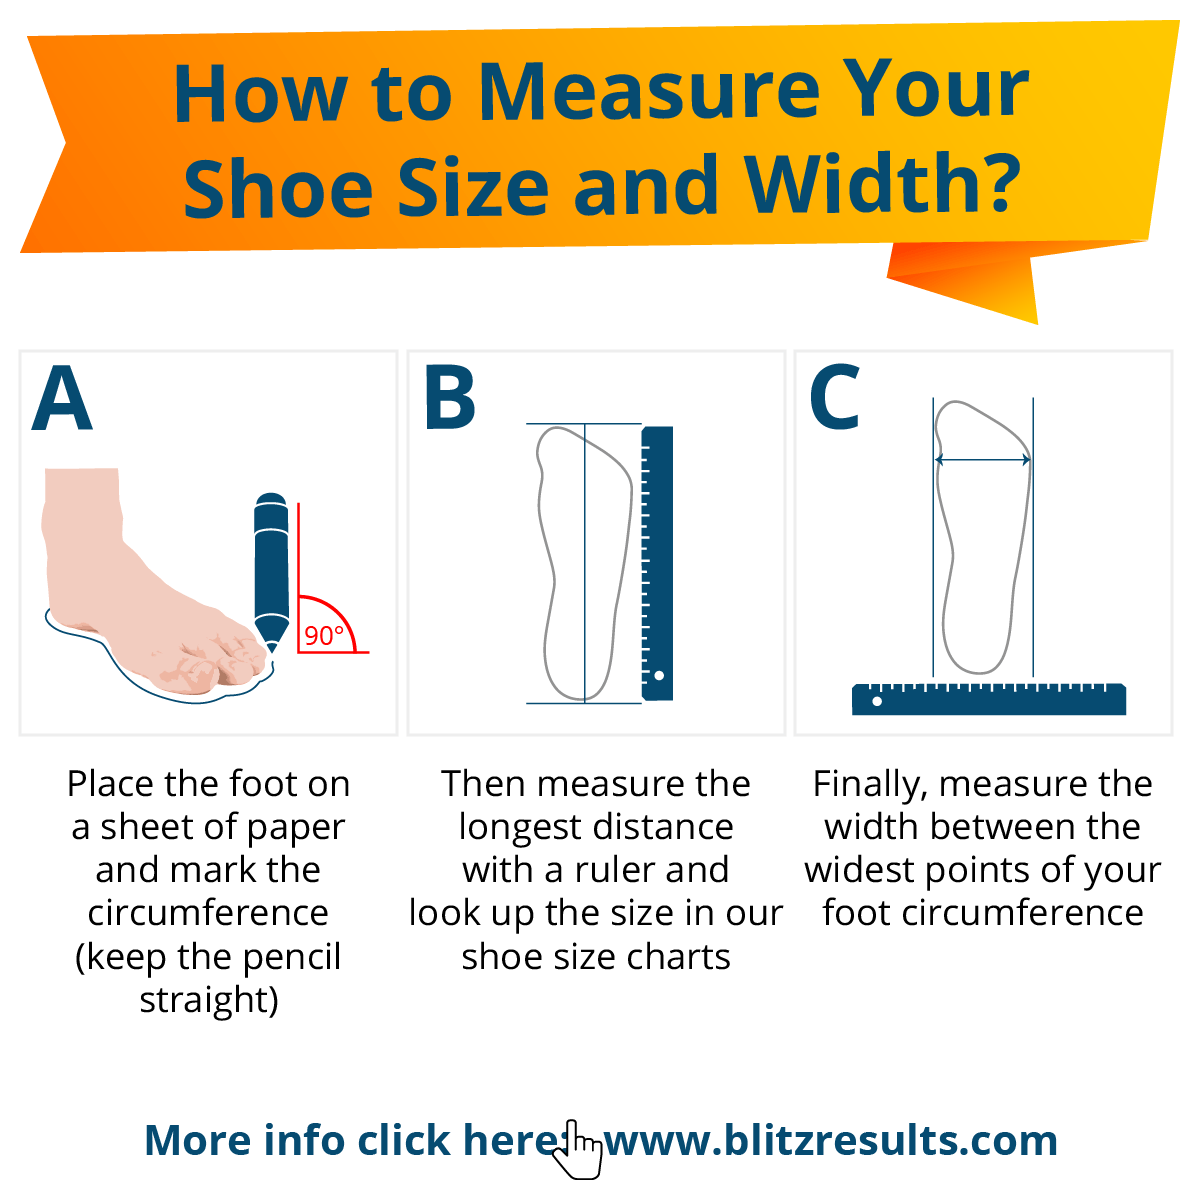 How to Measure your Shoe Size and Width at Home